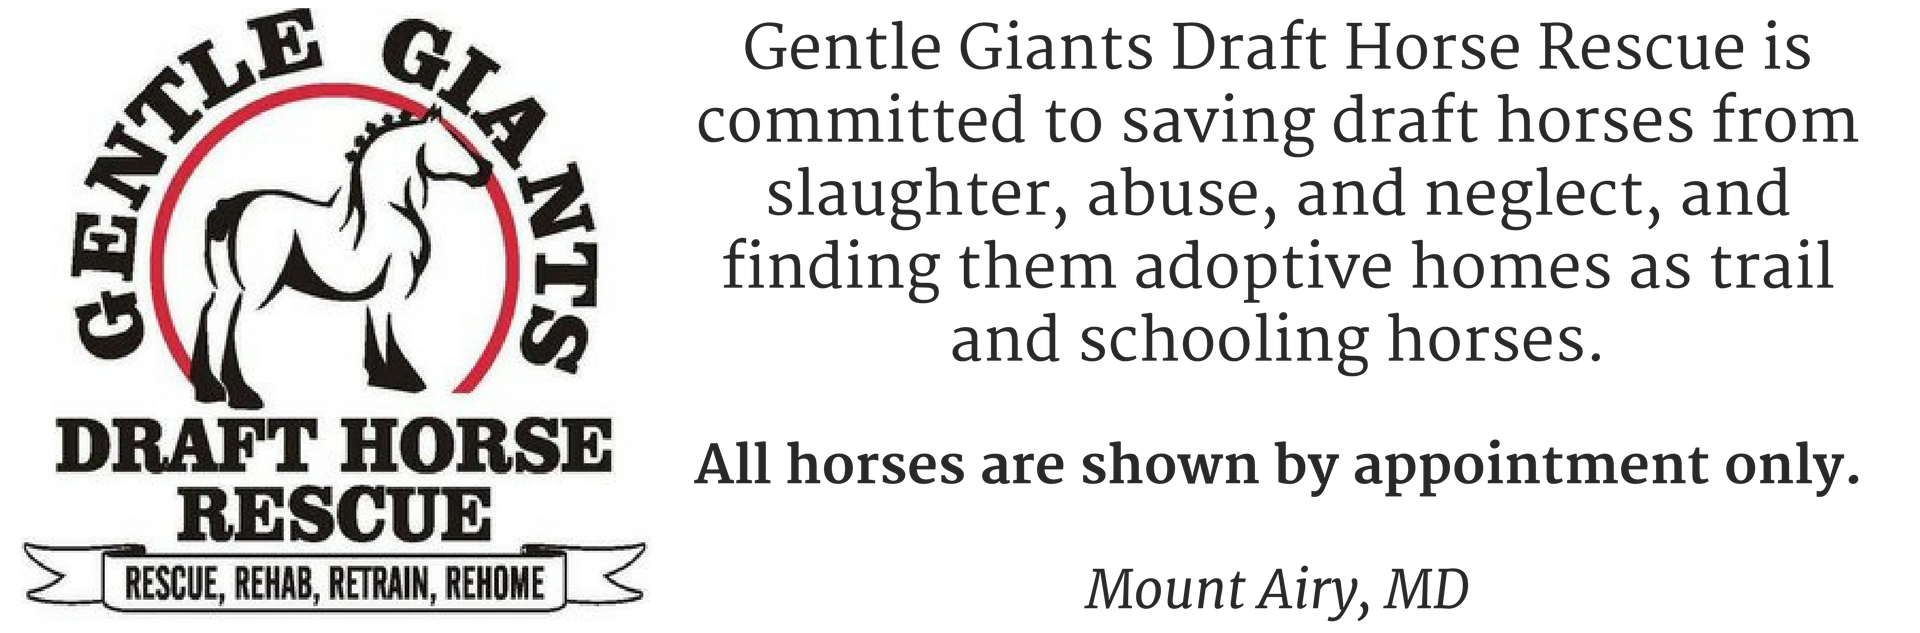 Gentle Giants Draft Horse Rescue is committed to saving draft horses from slaughter, abuse, and neglect, and finding them adoptive homes as trail and schooling horses.All horses are shown by appointment only.Mount Ai.png